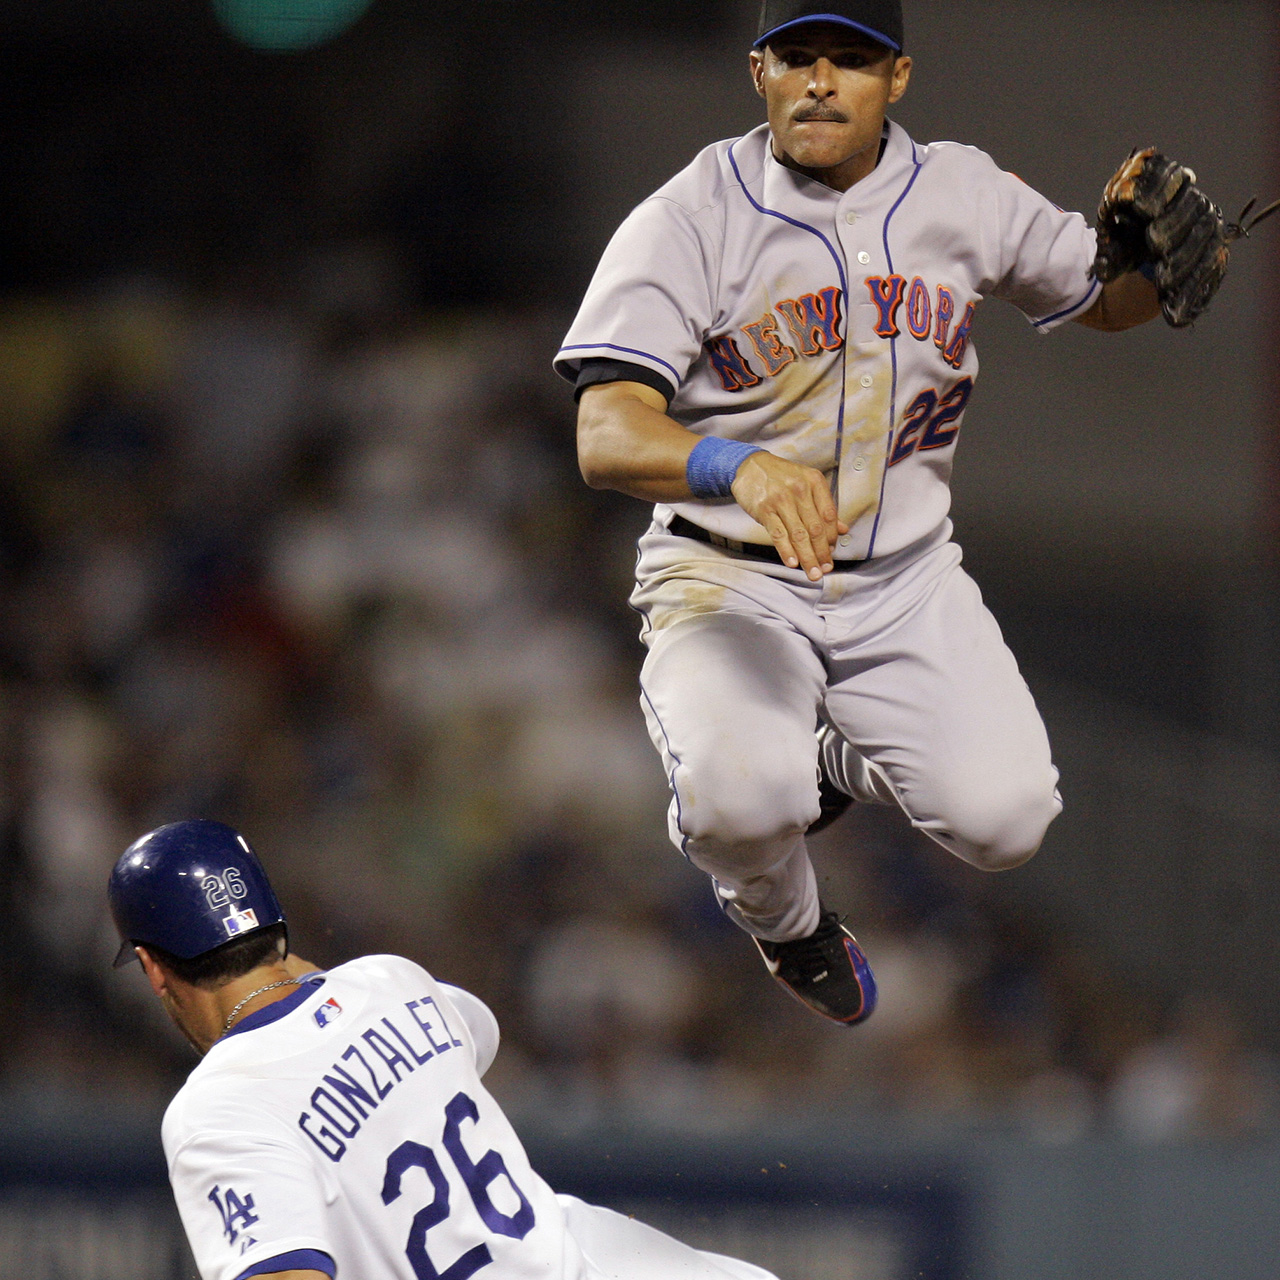 Both Jose And John (no Relation, As It Turns Out) Would Have Been Fine  Choices Here, But We Went With The Valentin Whose Clutch Hitting Helped The  Mets ...